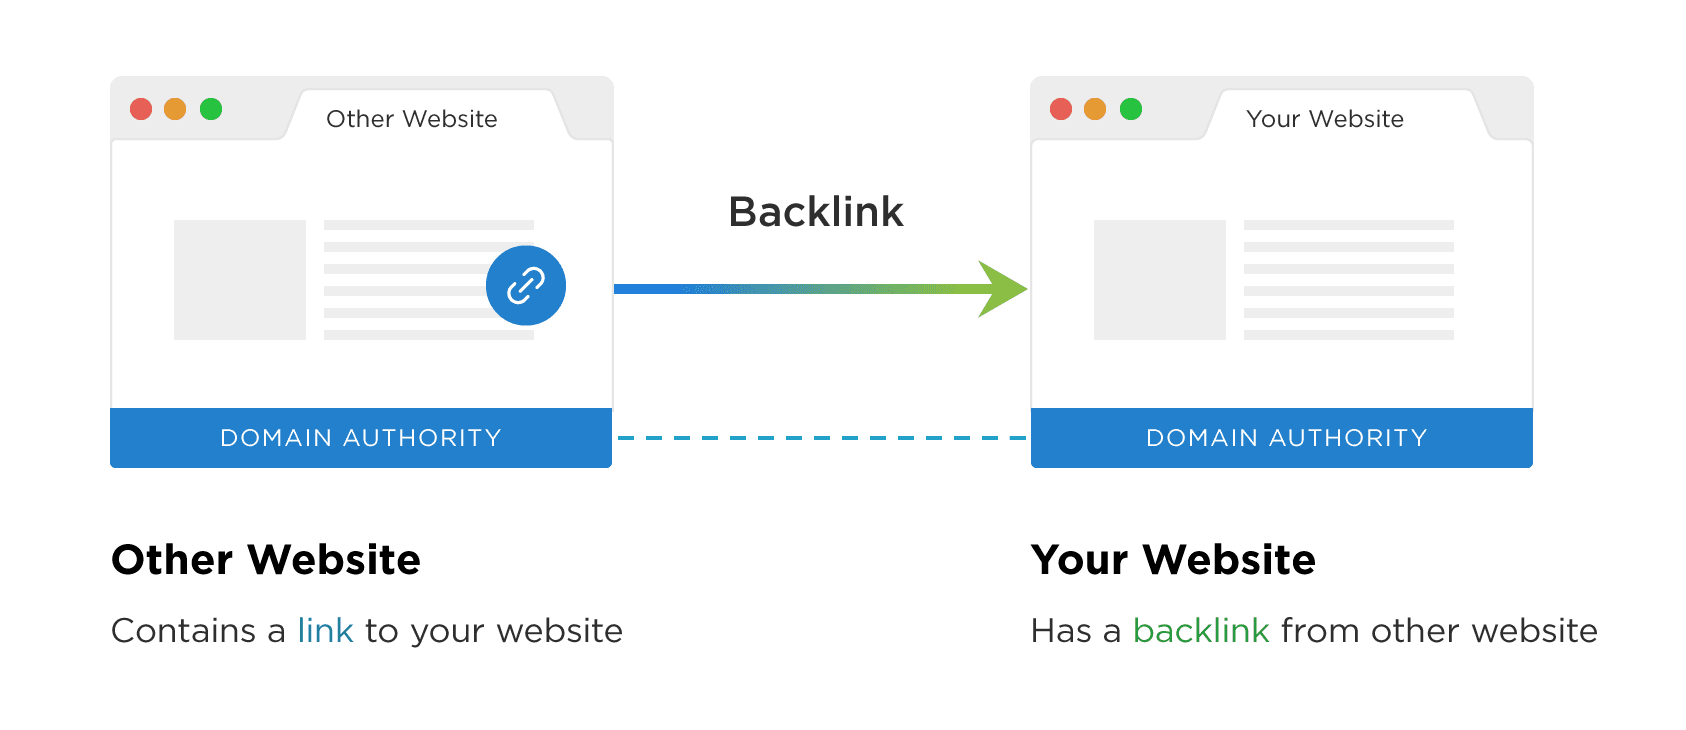 What are Backlinks? How to create Backlinks?